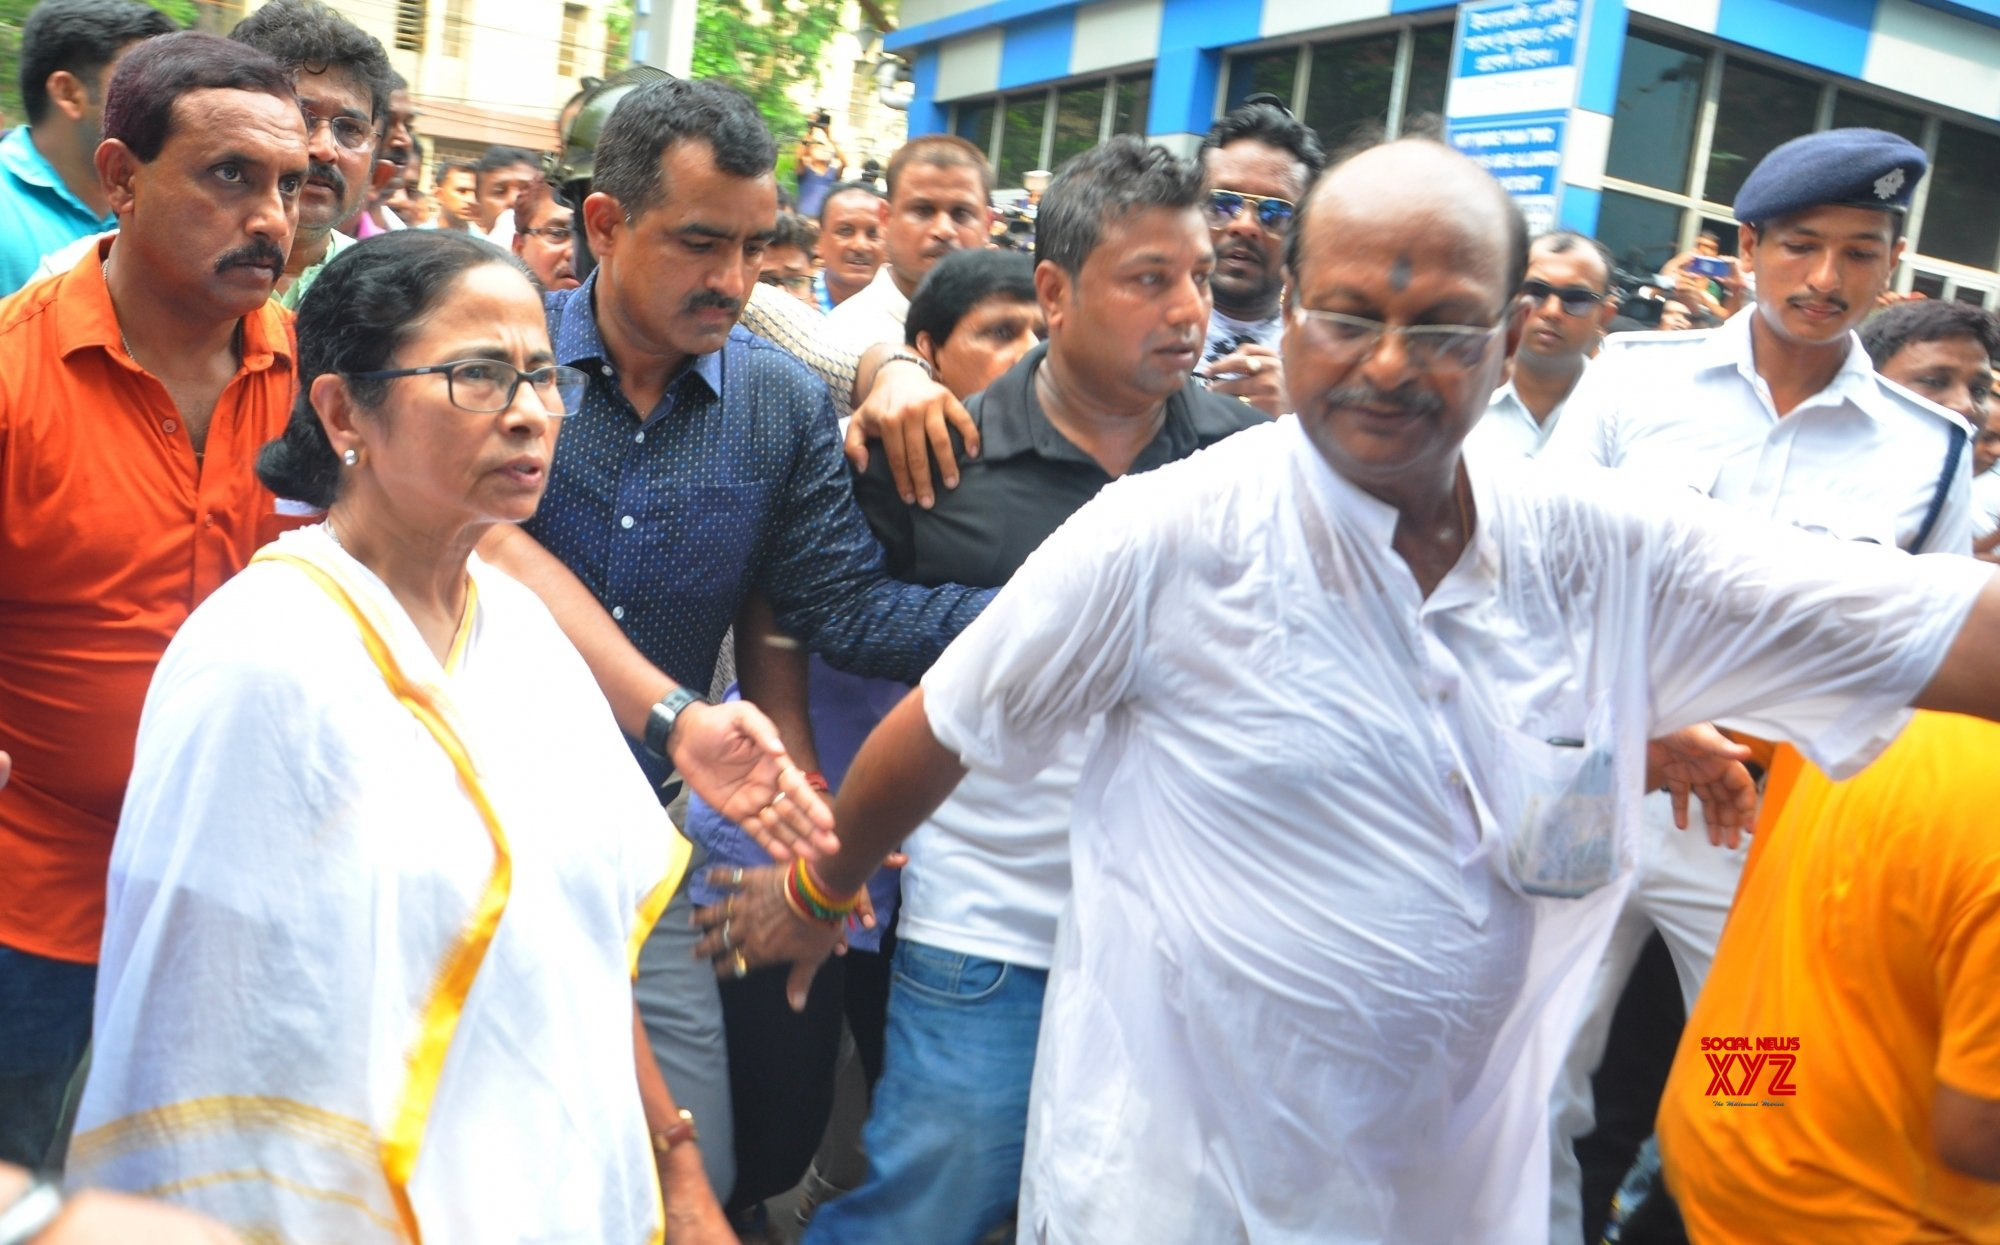 Bengal govt mulls strict action against agitating doctors